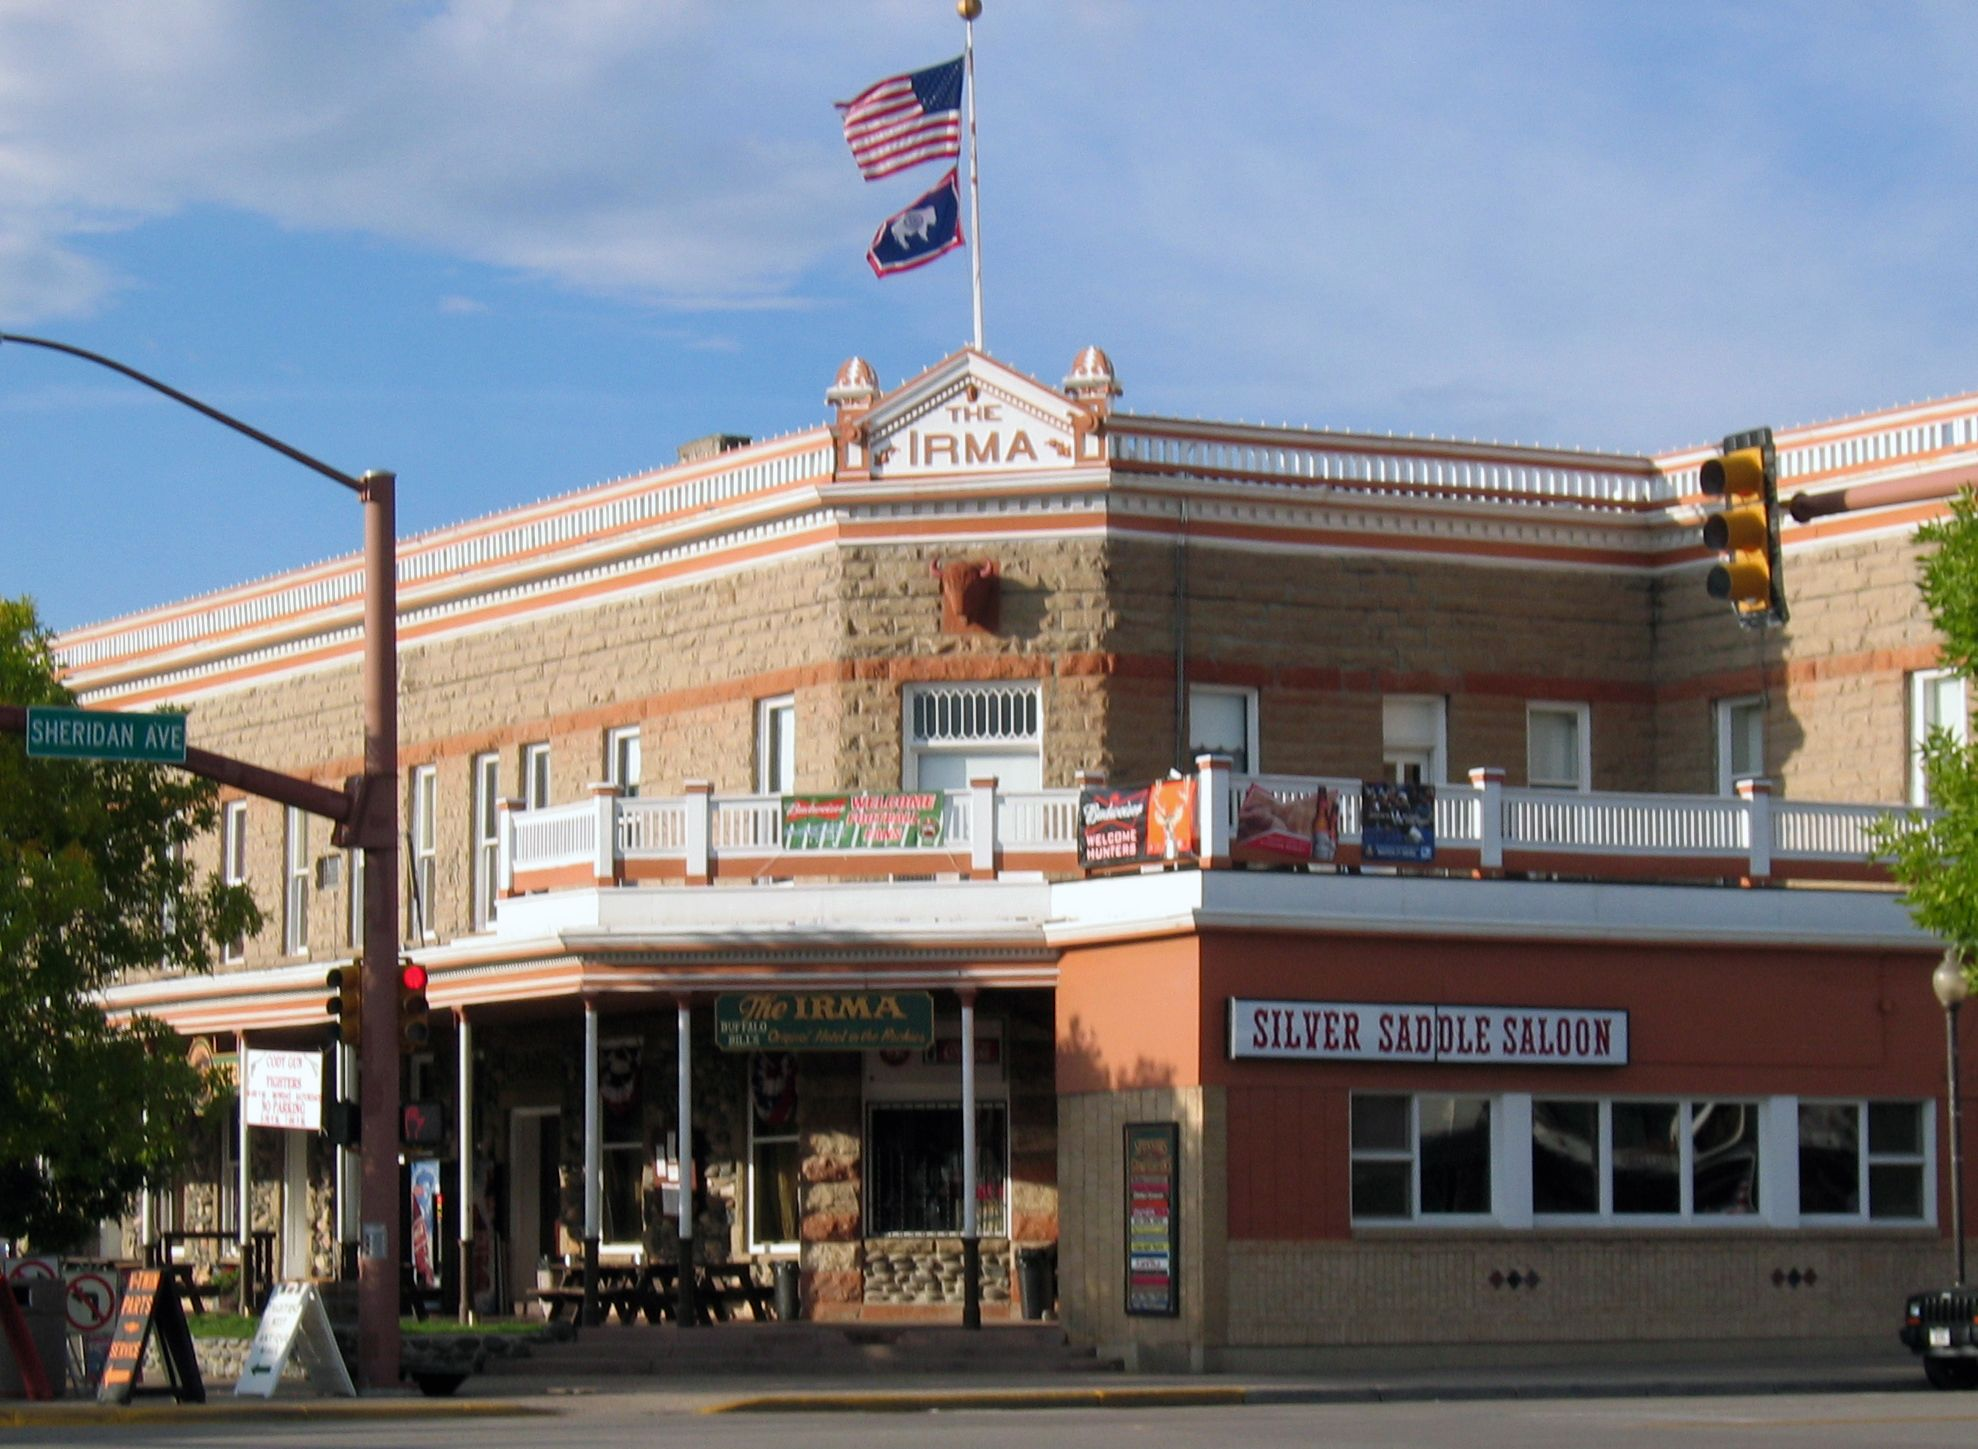 The Historic Irma Hotel Cody Wy Named After Buffalo Bill S Youngest Daughter Irma Wyoming Vacation Cody Wyoming Wyoming